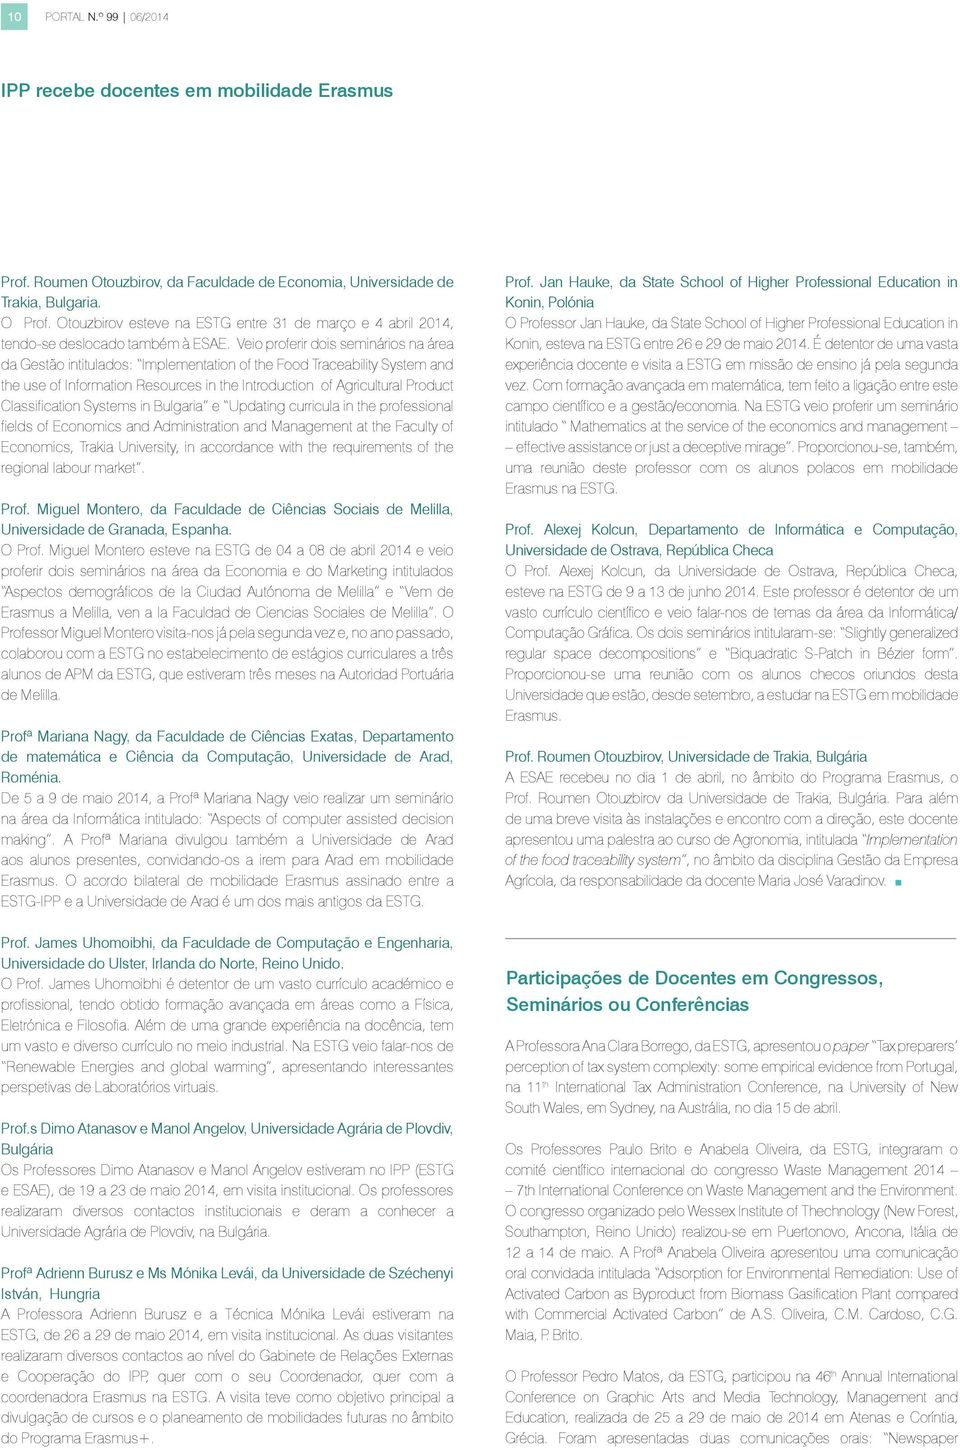 Classification Systems in Bulgaria e Updating curricula in the professional fields of Economics and dministration and Management at the Faculty of Economics, Trakia University, in accordance with the